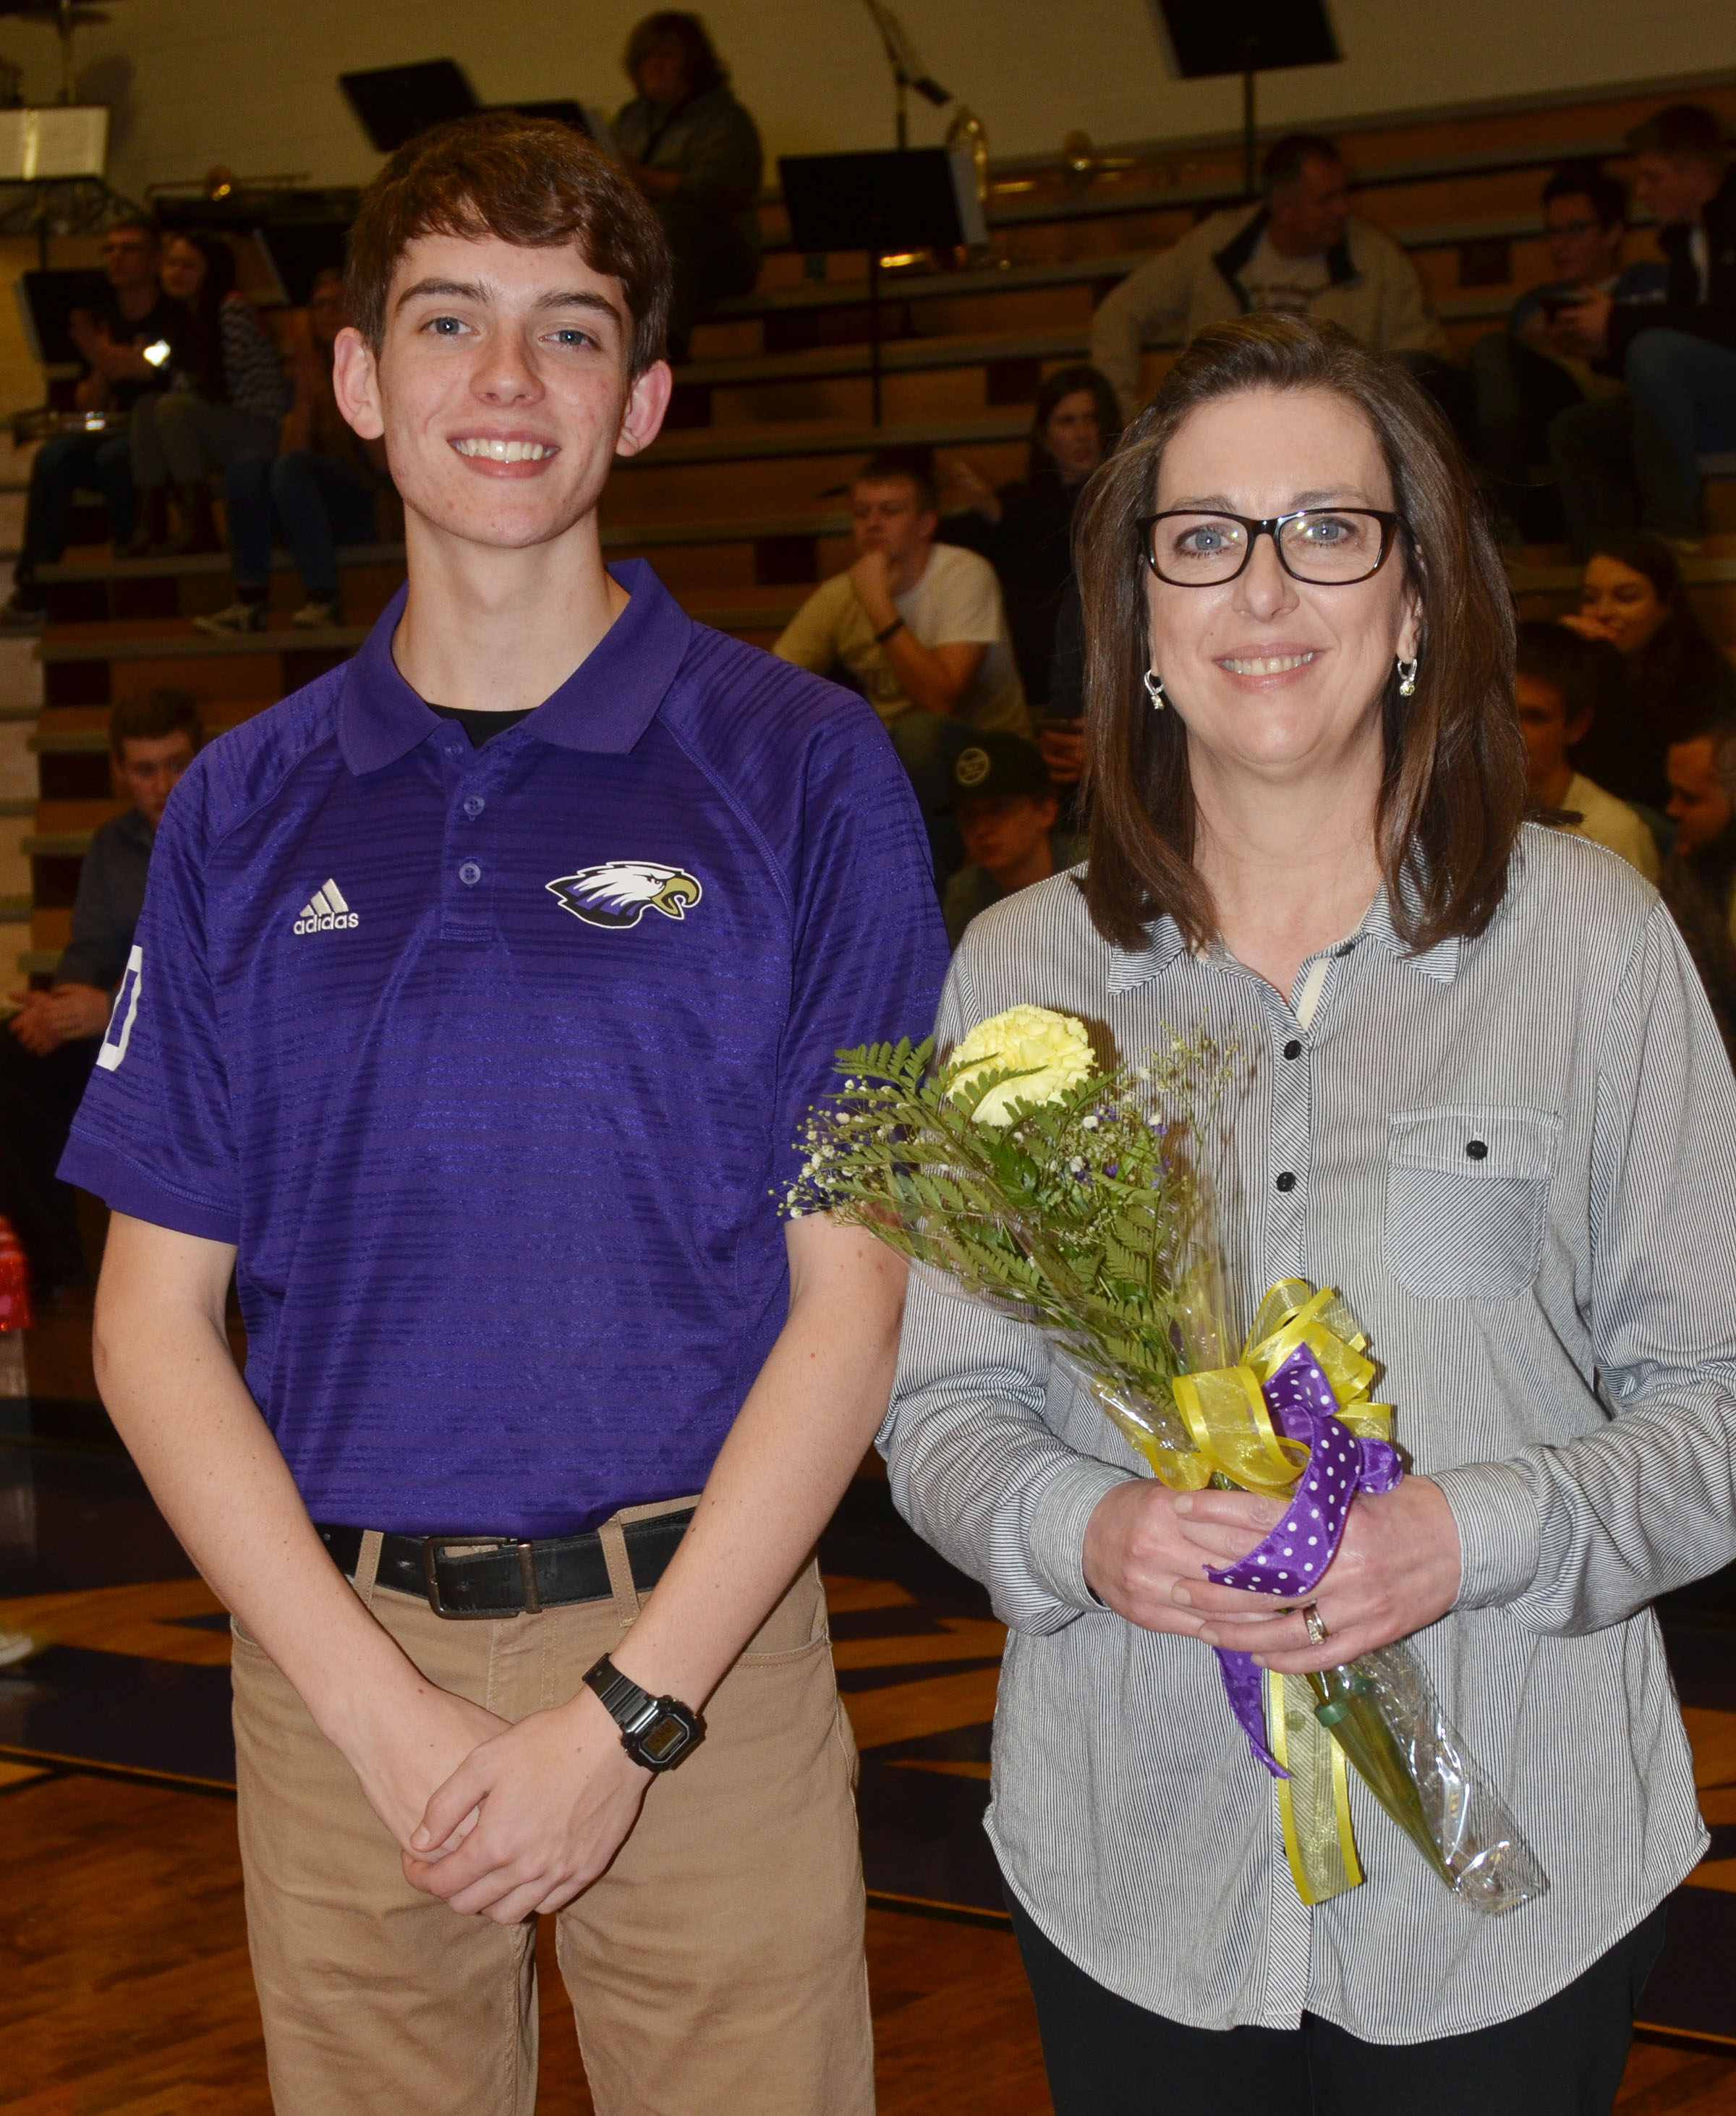 CHS senior bowling team member Murphy Lamb is honored. He is pictured with his mother, Tammy Harris.